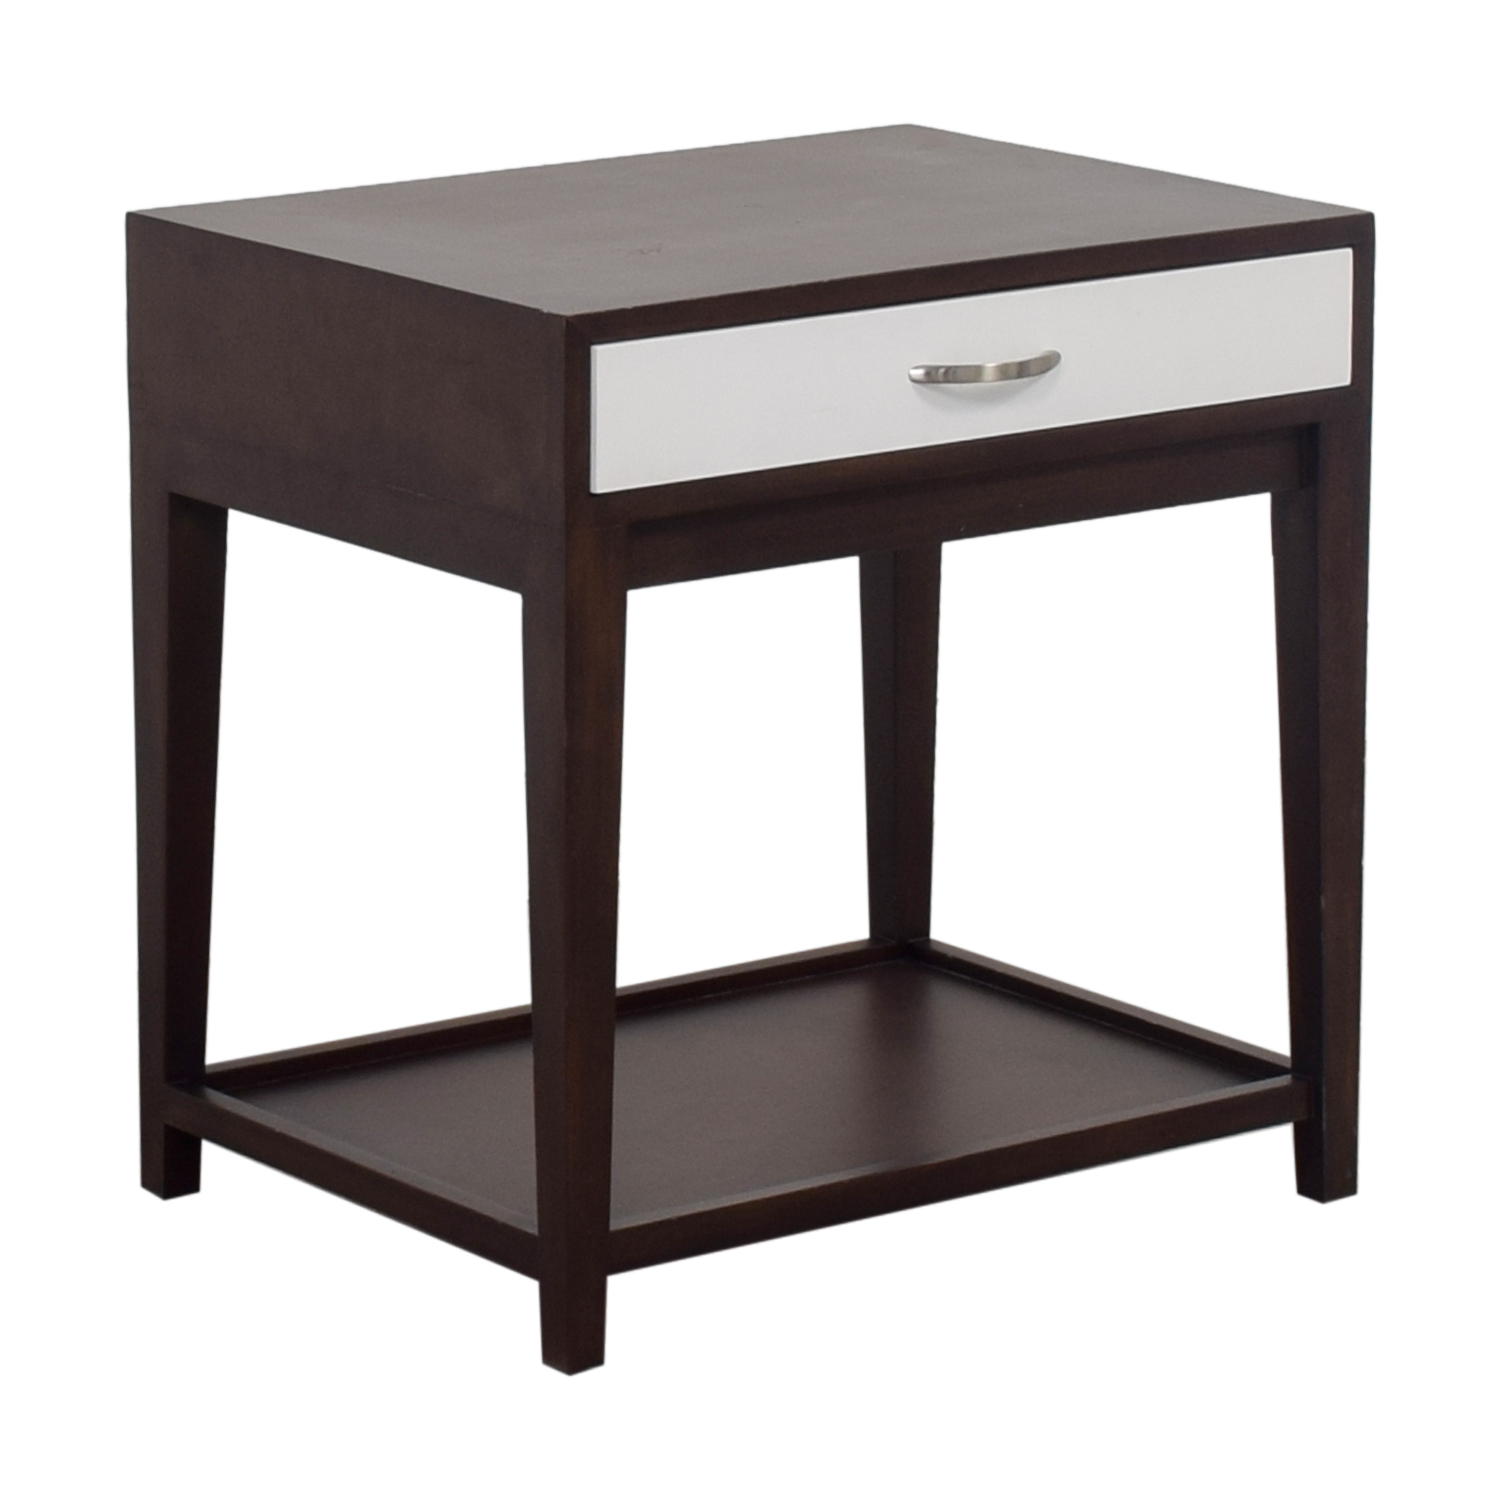 shop Buccola Brown and White Nightstand Buccola End Tables